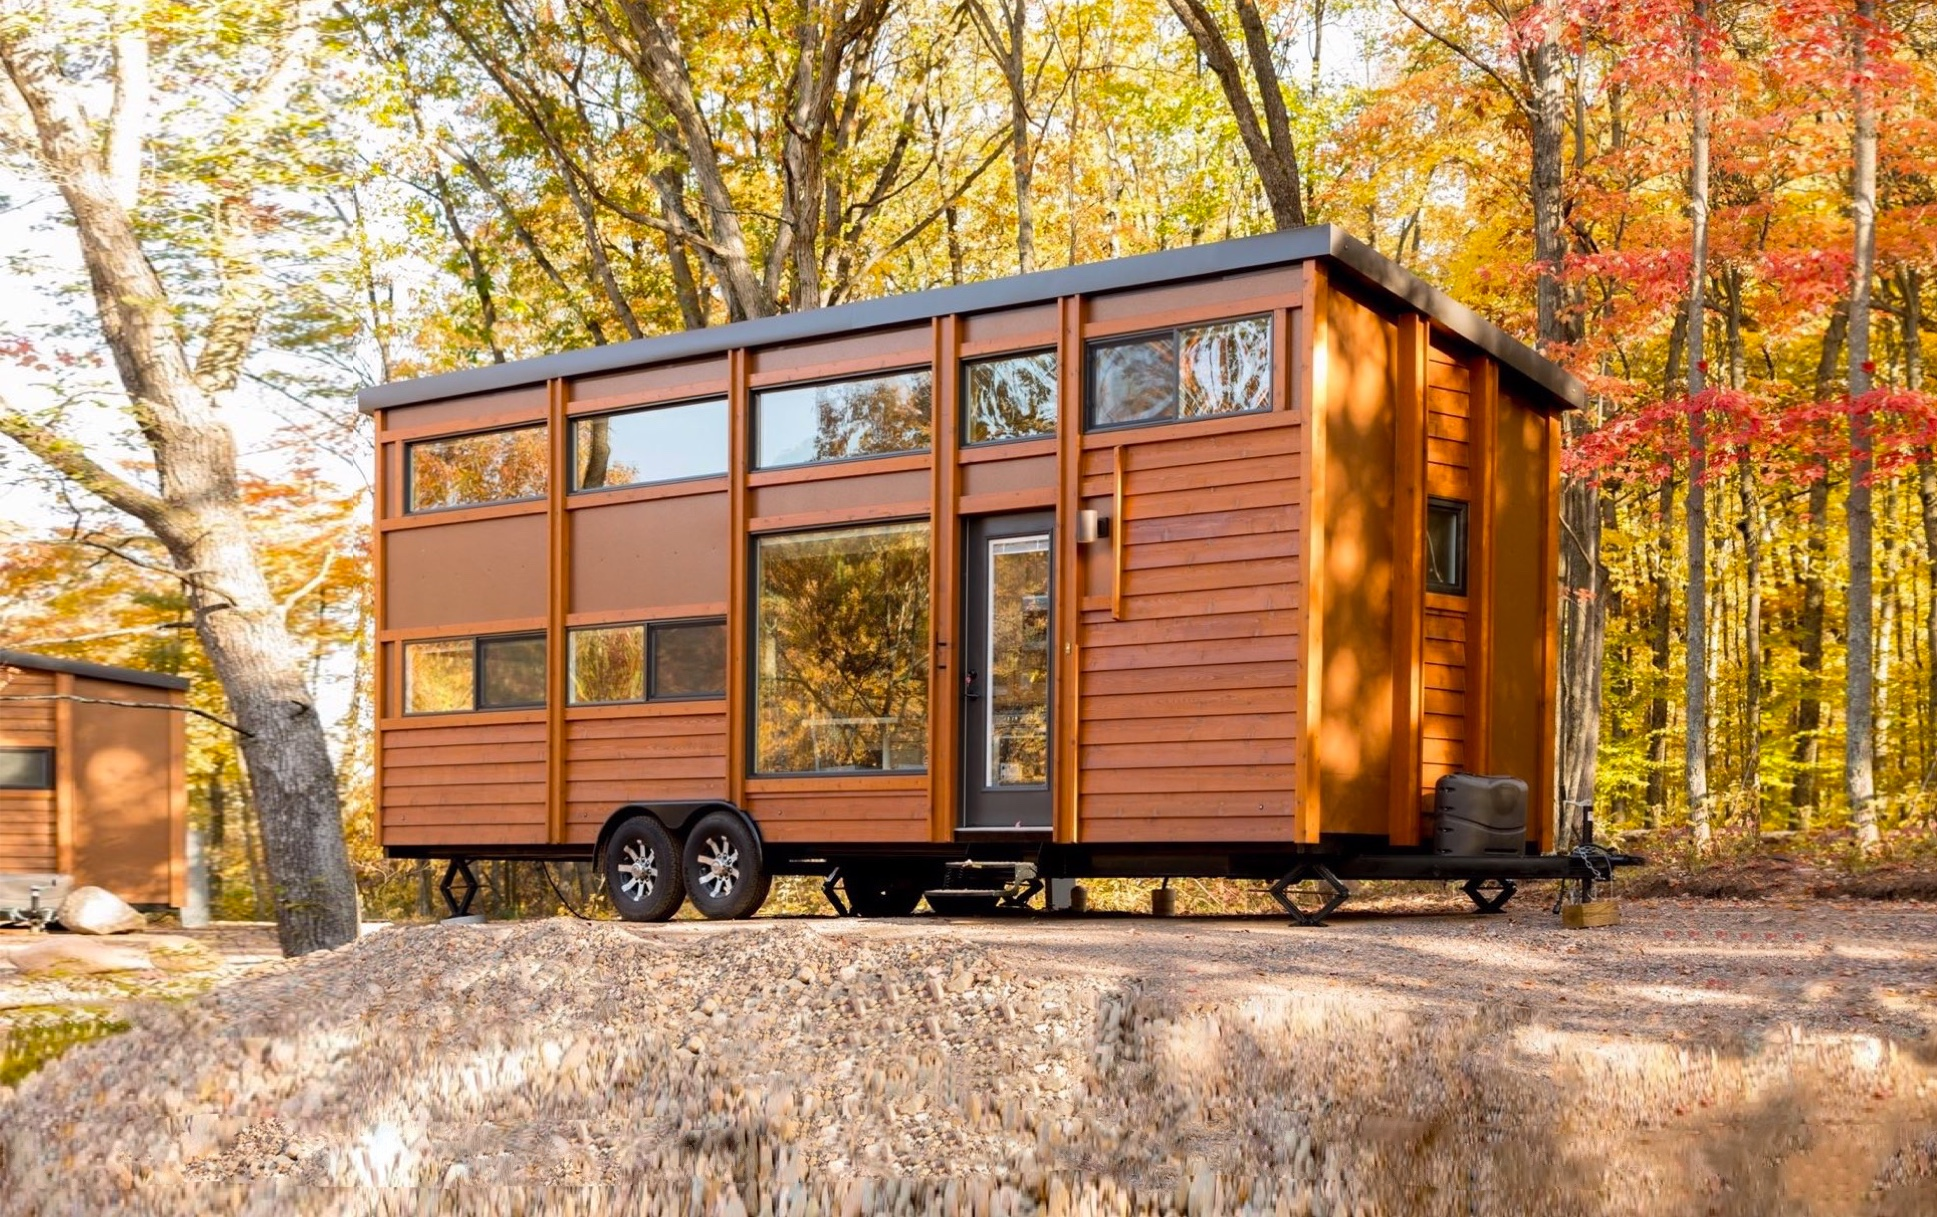 Home | Tiny Houses Tiny Trailors Mobile Home on pod homes, 1000 sq ft. small homes, busses from tiny homes, tiny key west homes, 400 sq ft. small homes, tiny pueblo homes, mini custom homes,